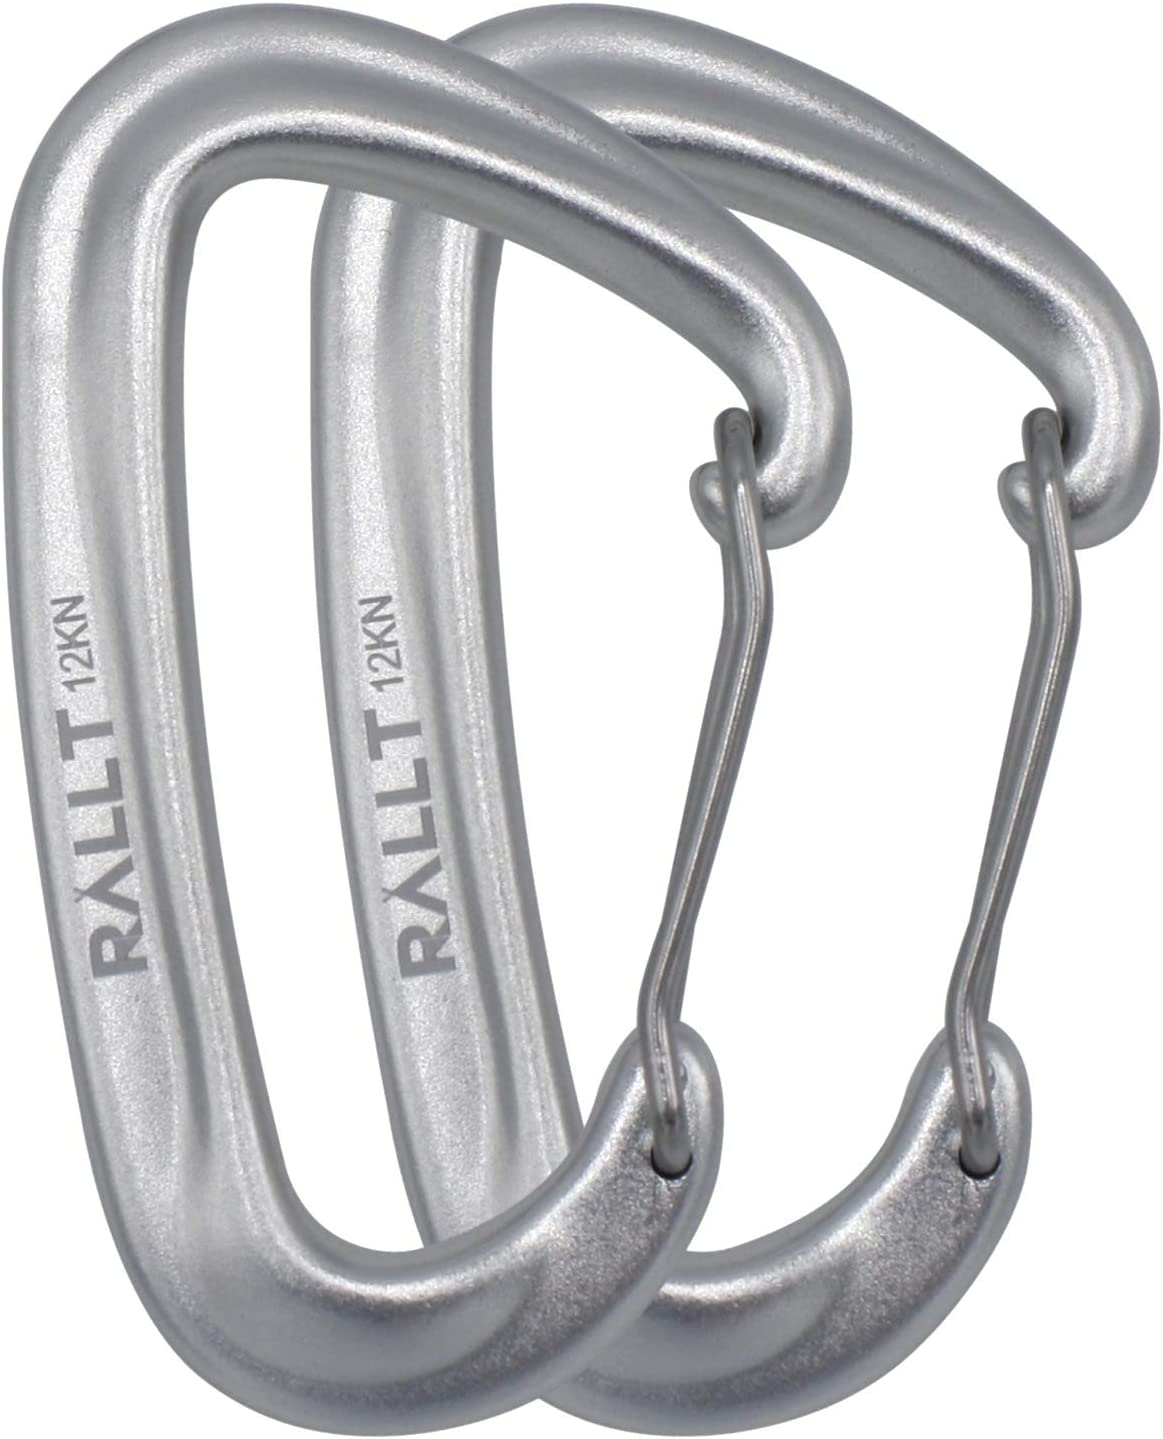 Lot 12 Carabiner Spring Belt Clip Snap Key Chain Aluminum Alloy For Camping